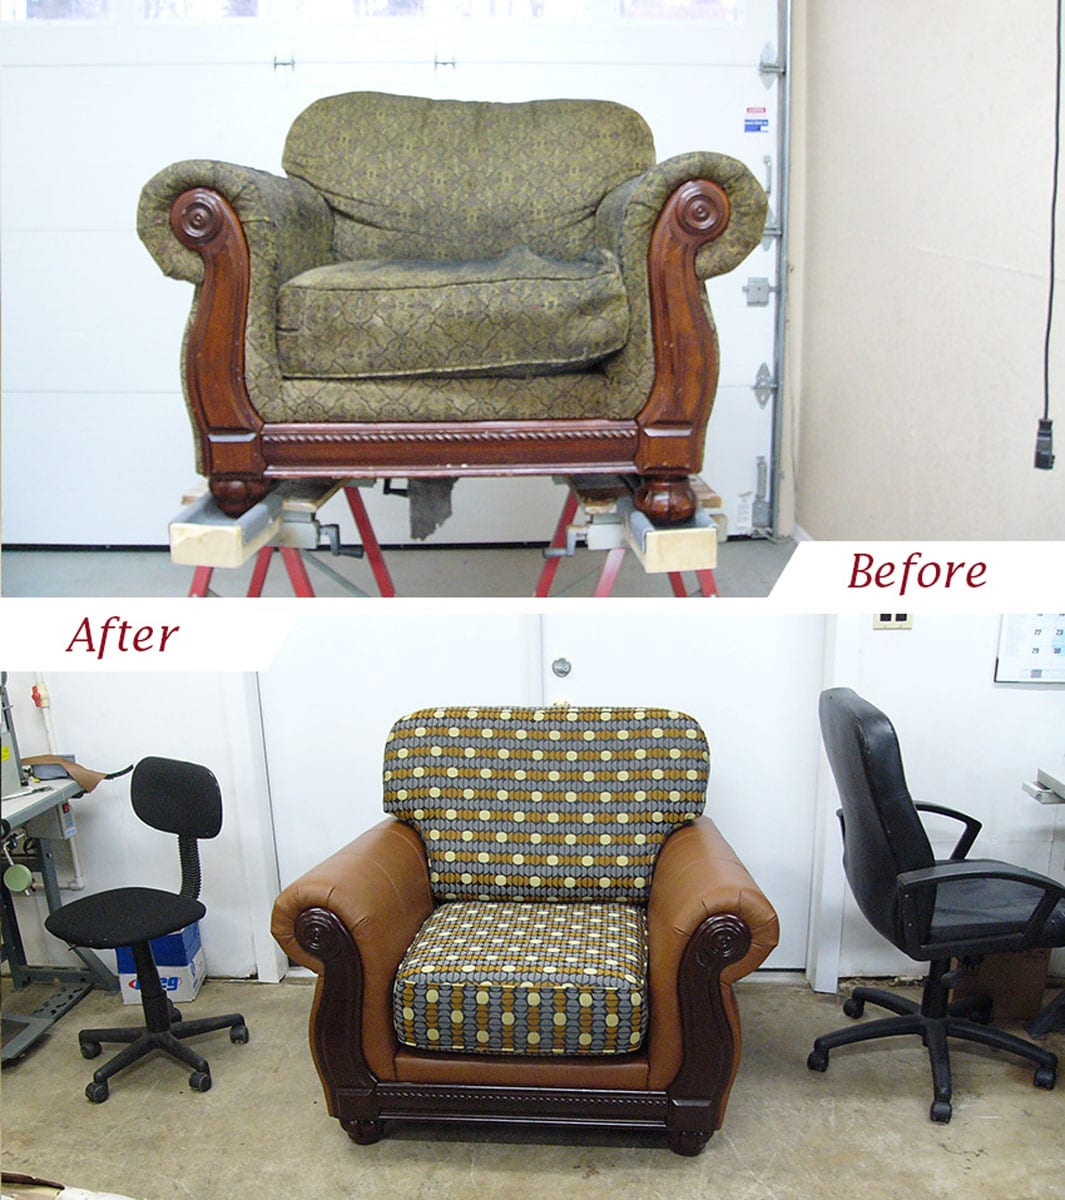 Upholstery Furniture Repair: Living Room Chair Restoration With Customized Upholstery